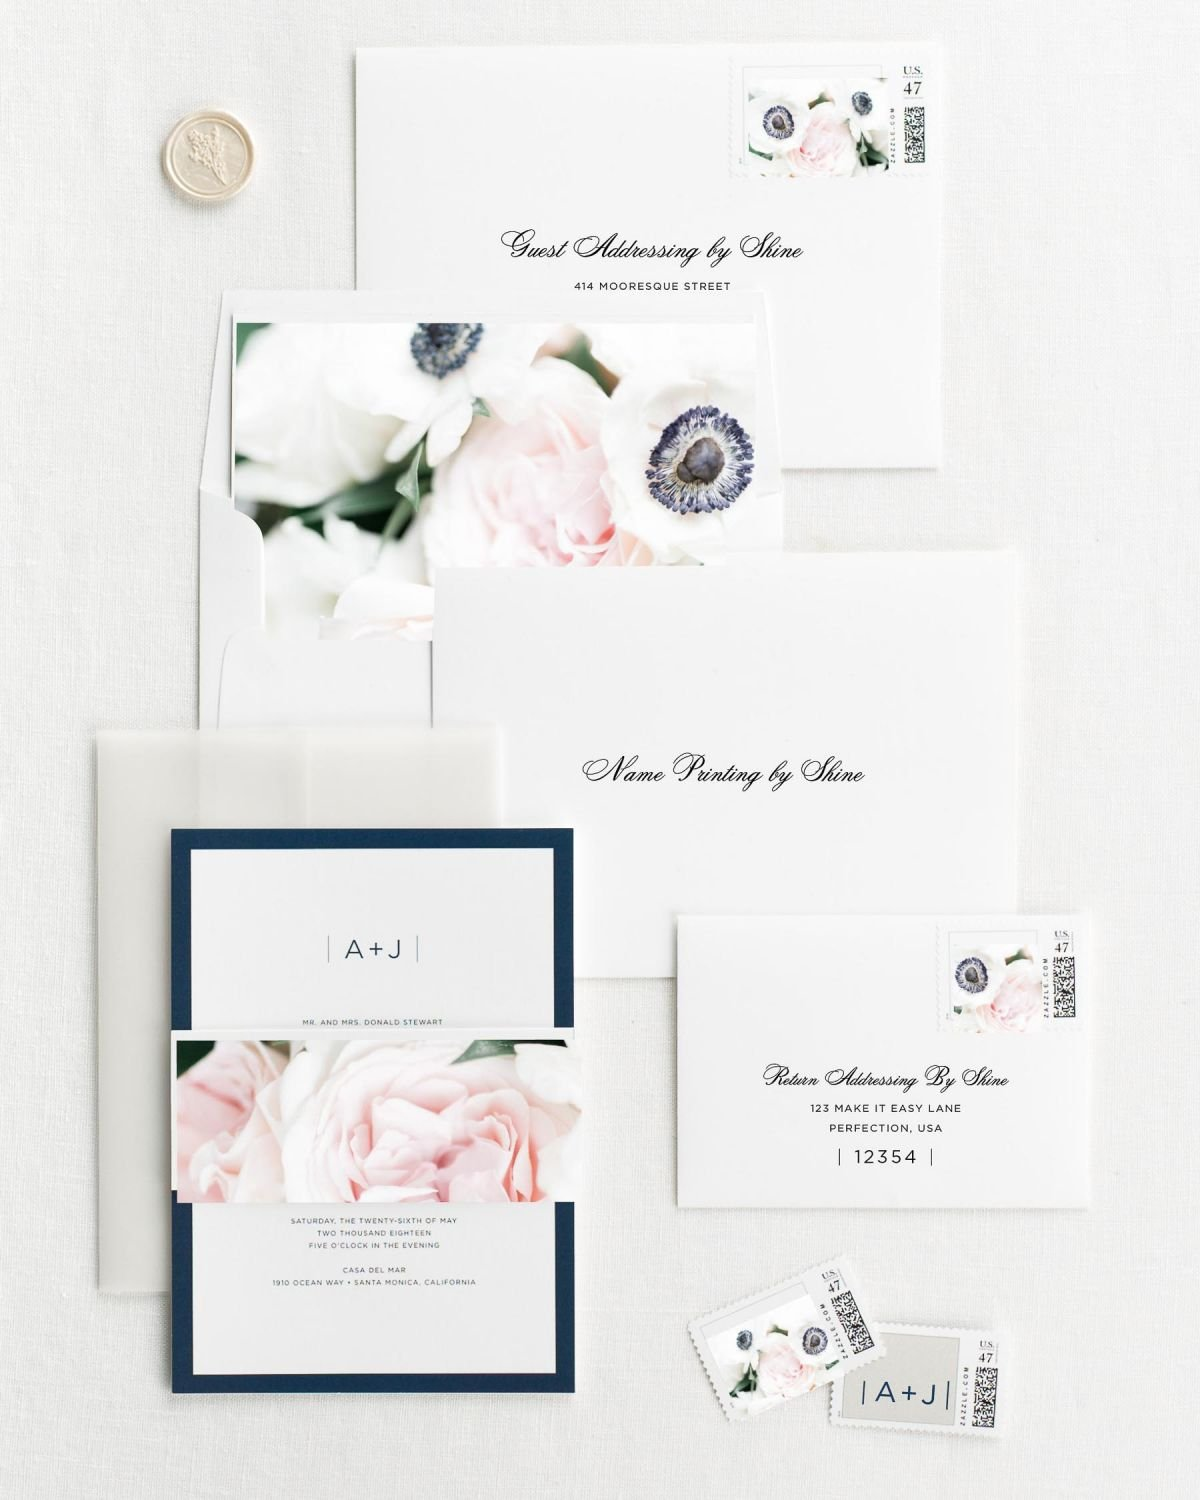 5x7 Cardstock For Invitations Arts Arts